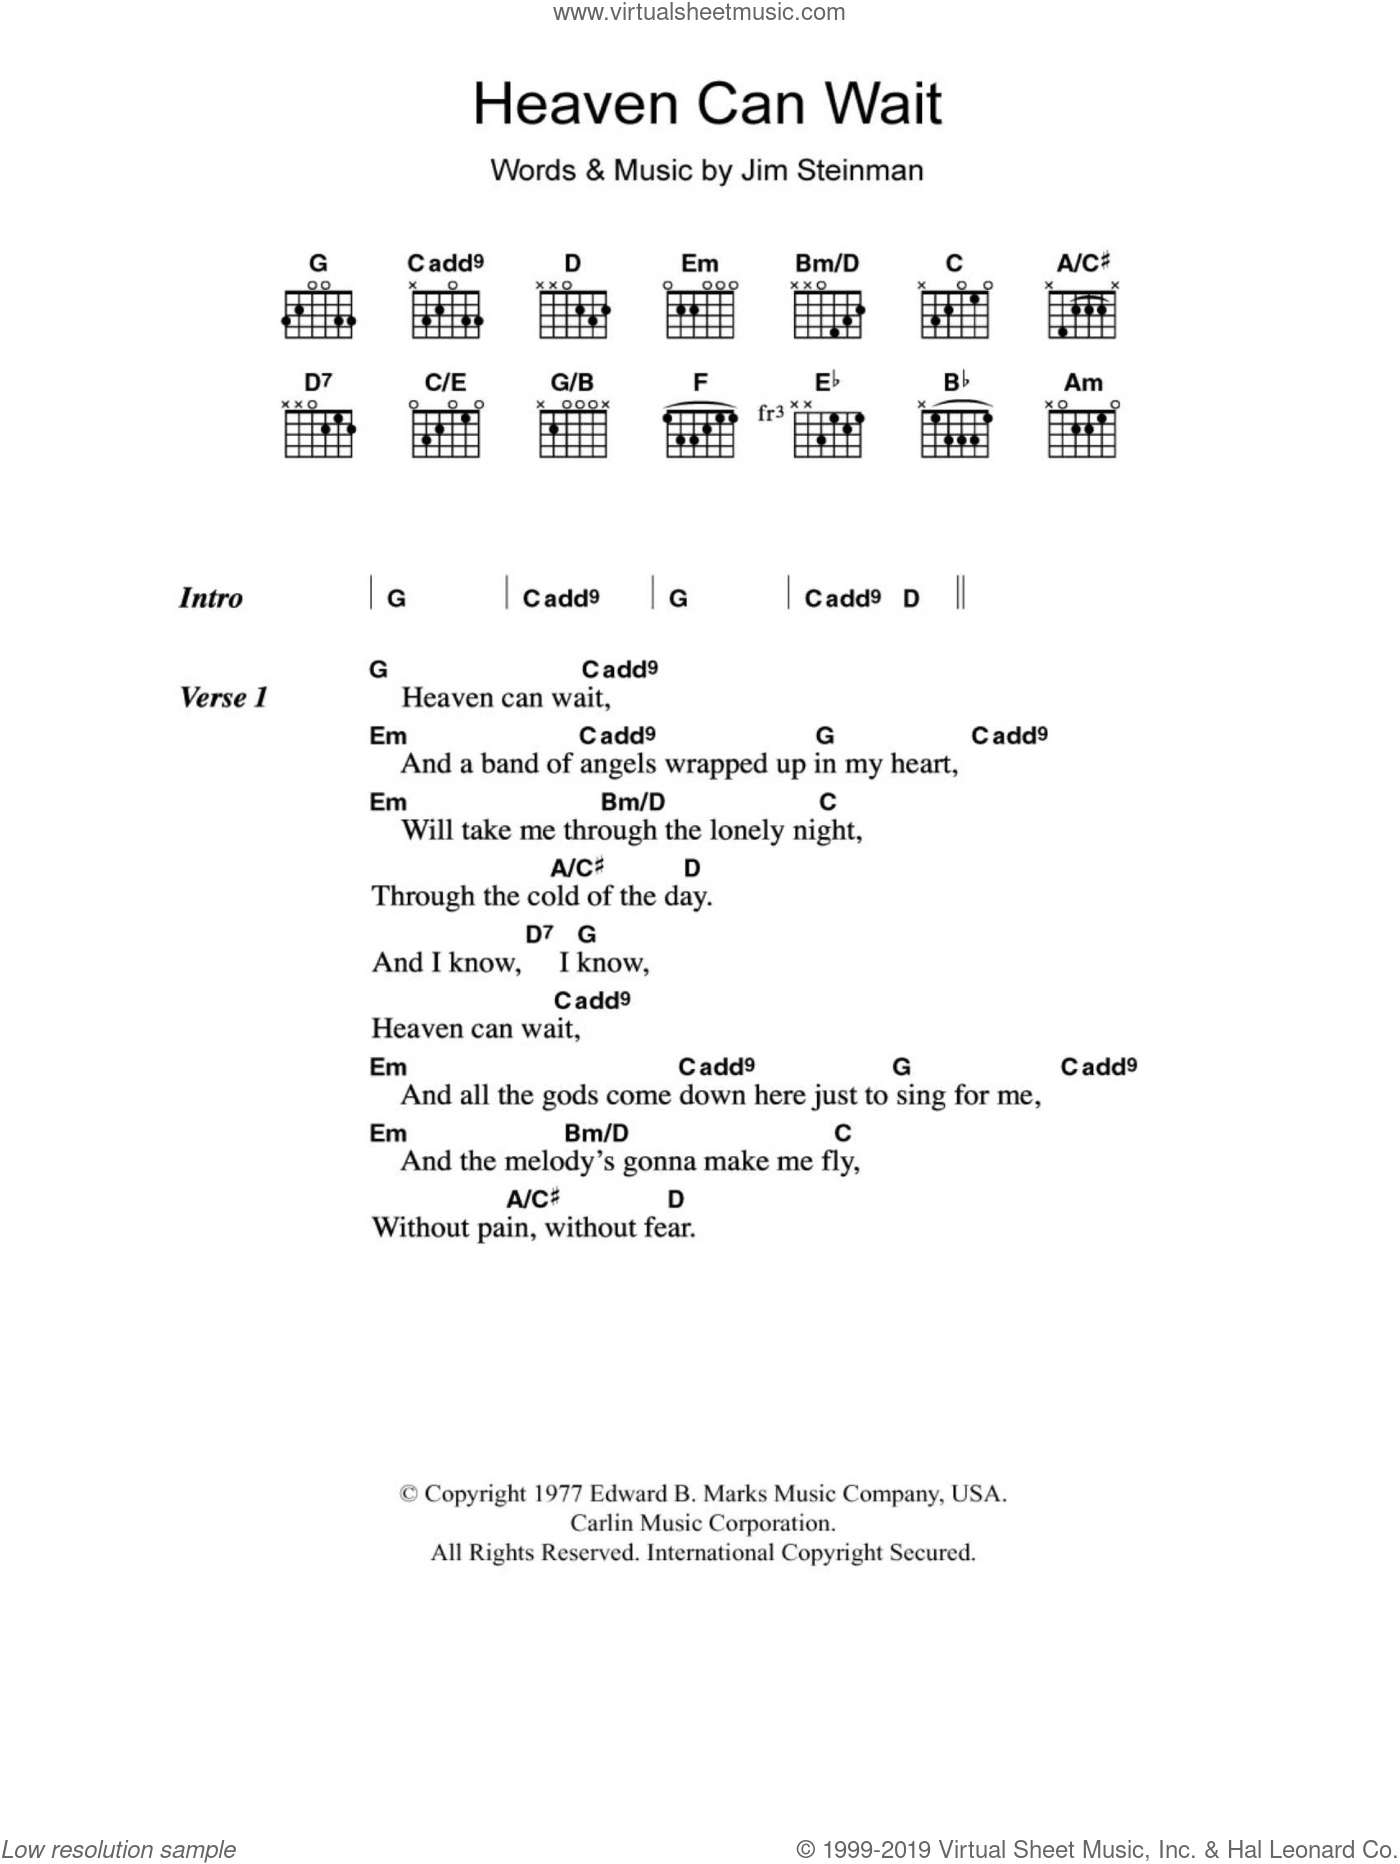 Heaven Can Wait sheet music for guitar (chords) by Jim Steinman